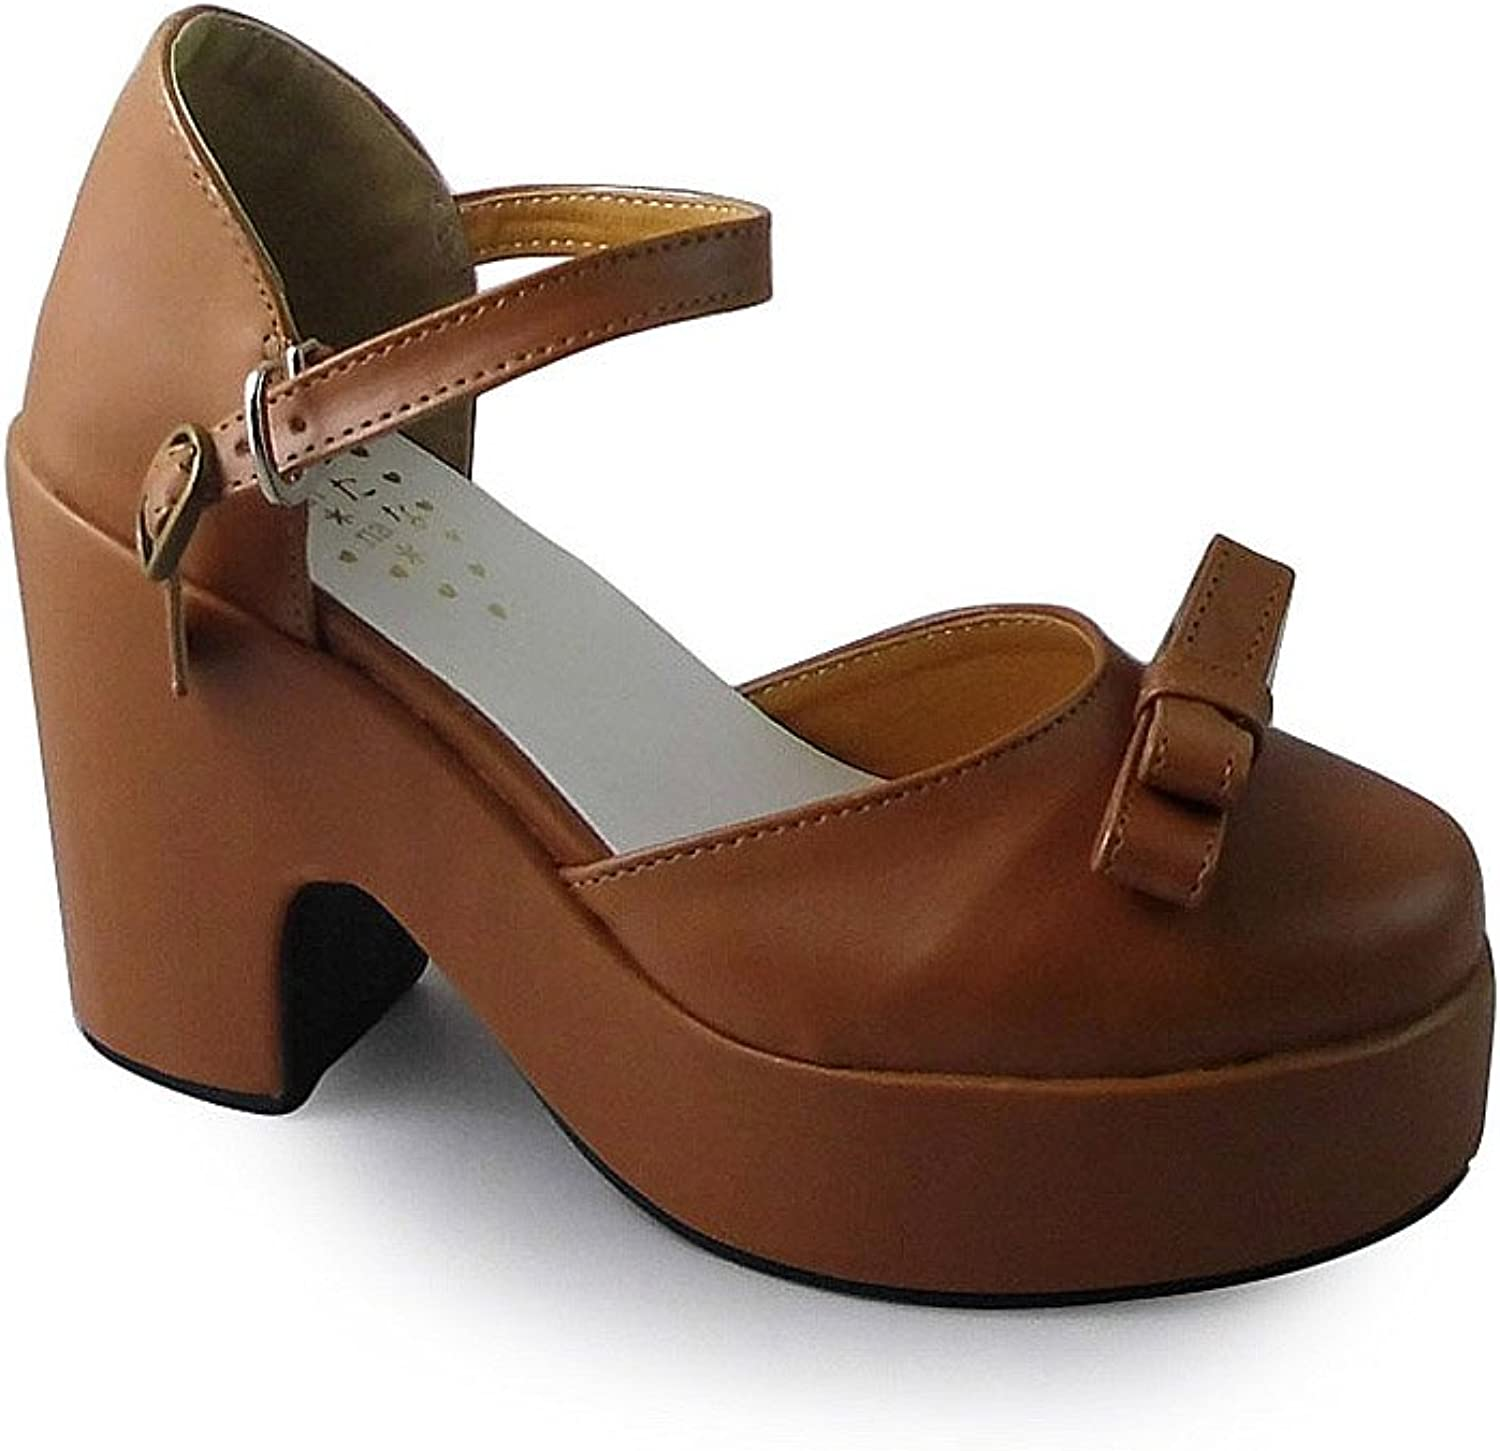 Antaina Mid Heel Brown PU Bow Chunky Lolita Platform Casual Sandals shoes